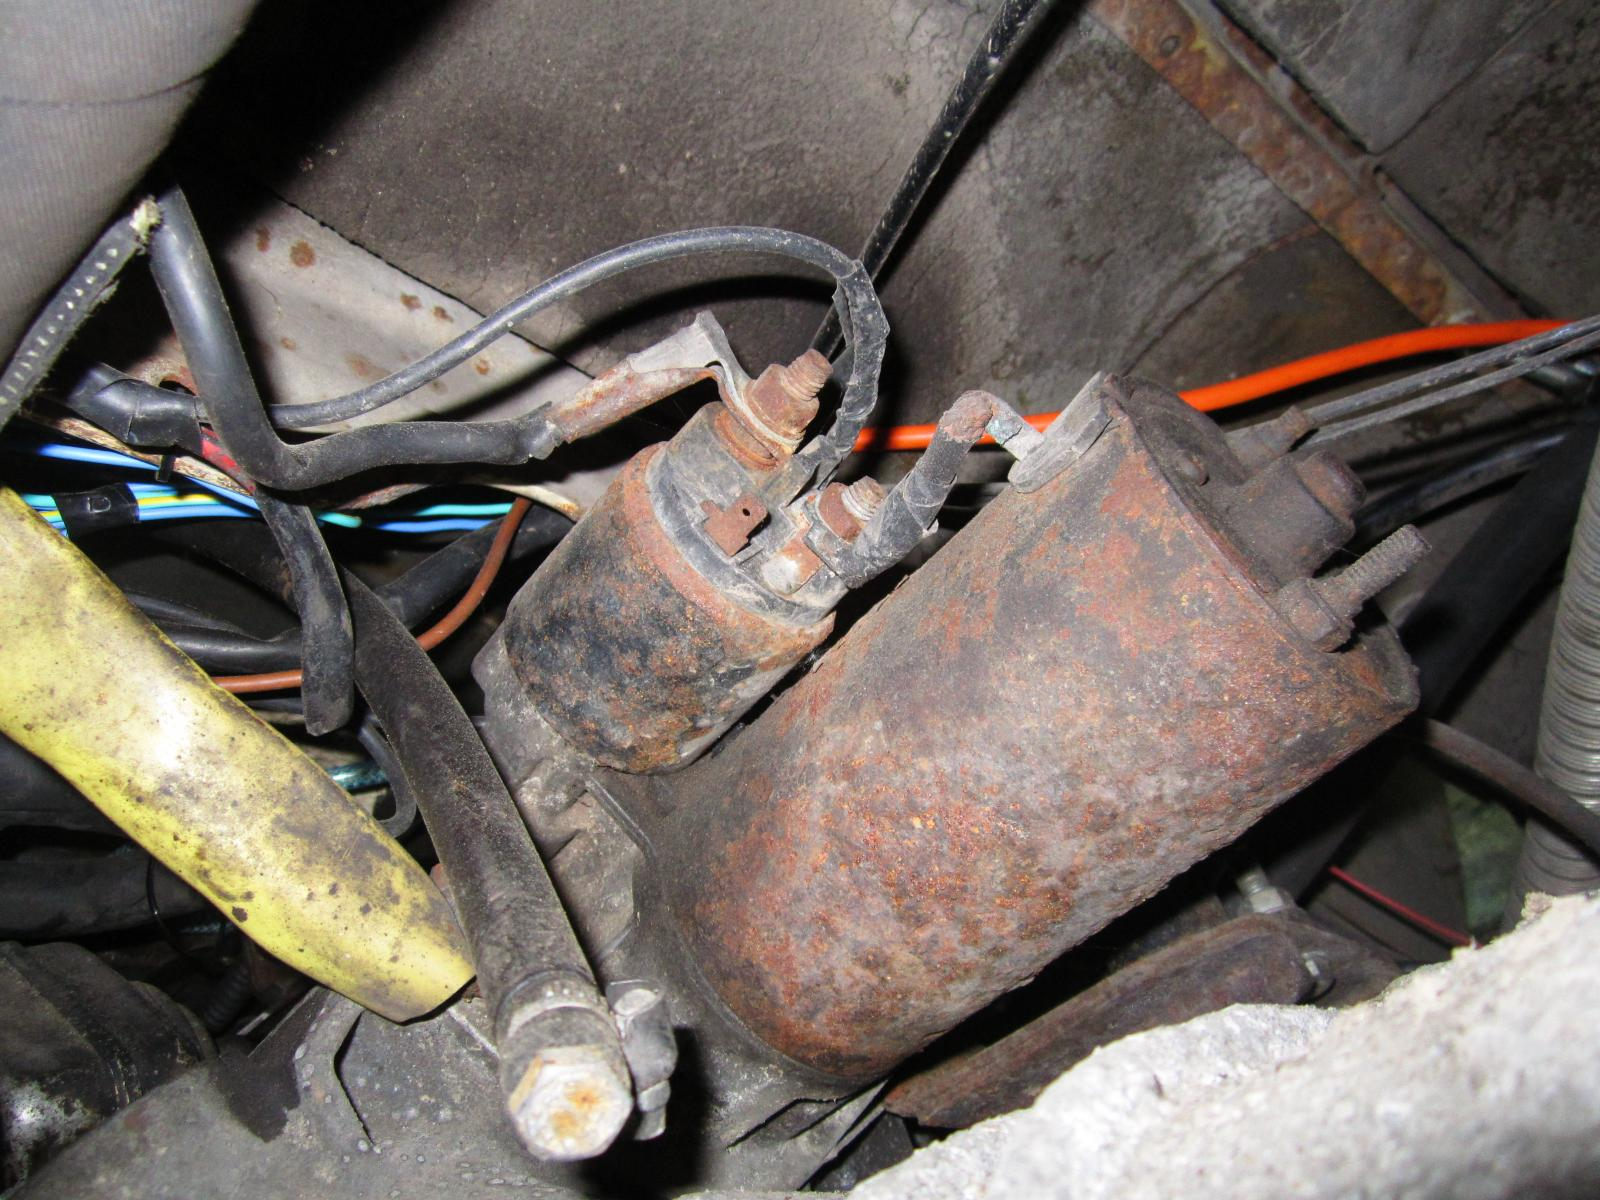 Vanagon View Topic Starter Wiring Prognosis How To Wire A Image May Have Been Reduced In Size Click Fullscreen